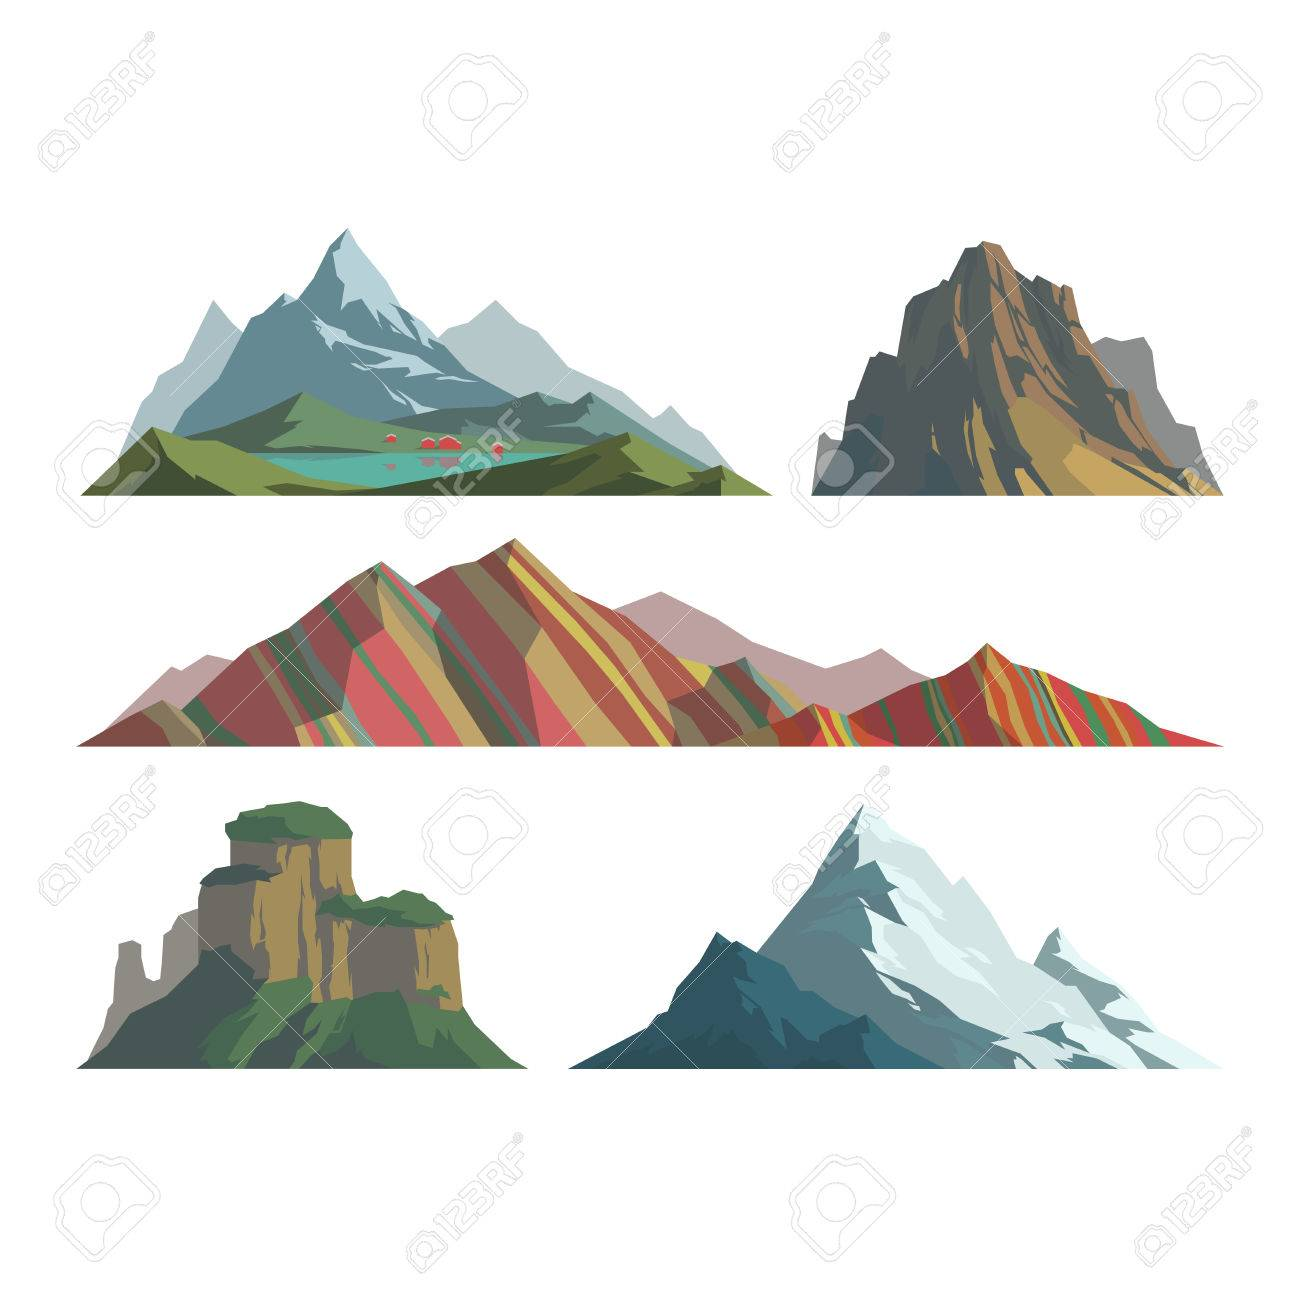 Mountain Vector Illustration Nature Mountain Silhouette Elements